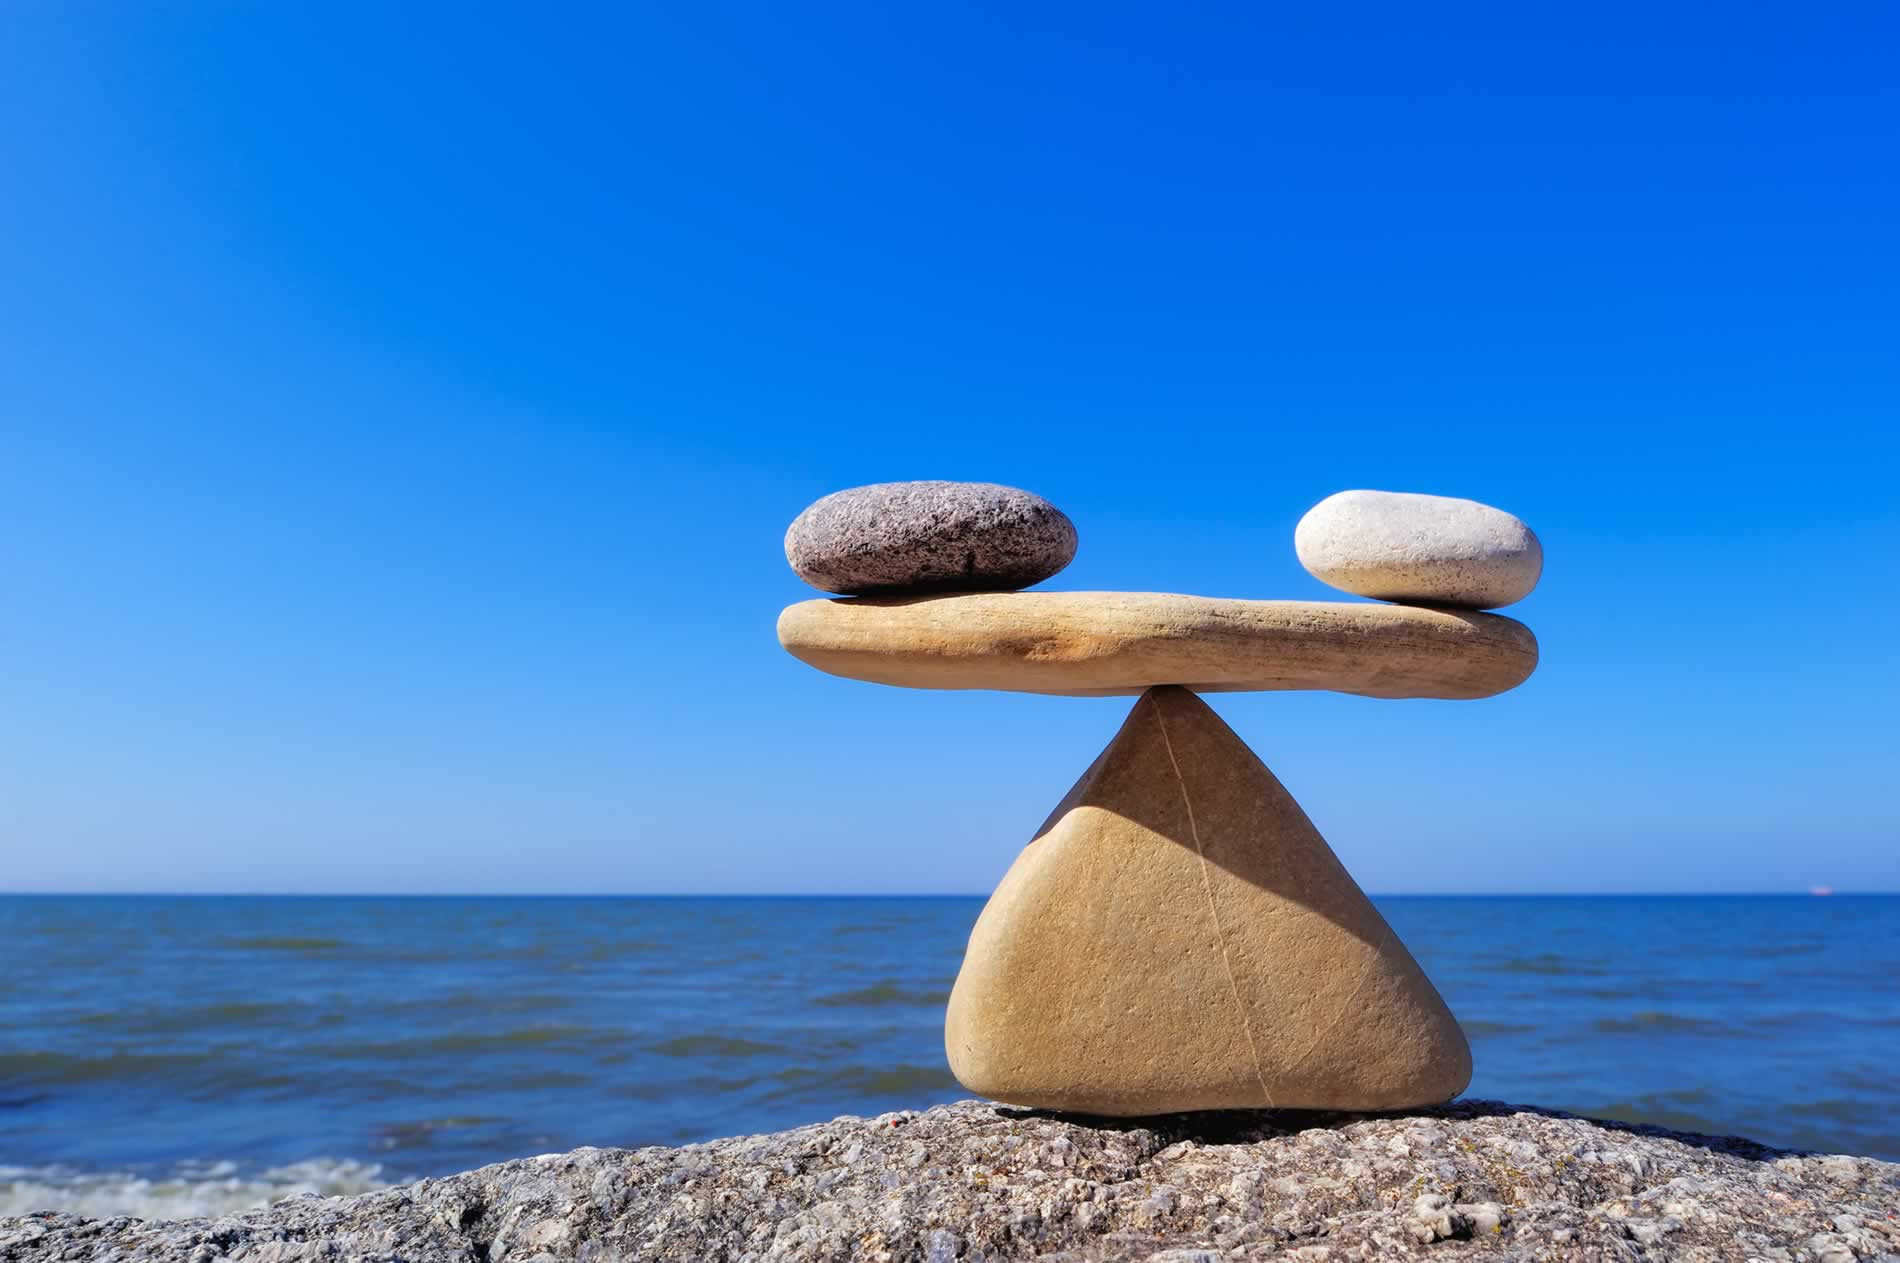 Creating Certainty Through Balance